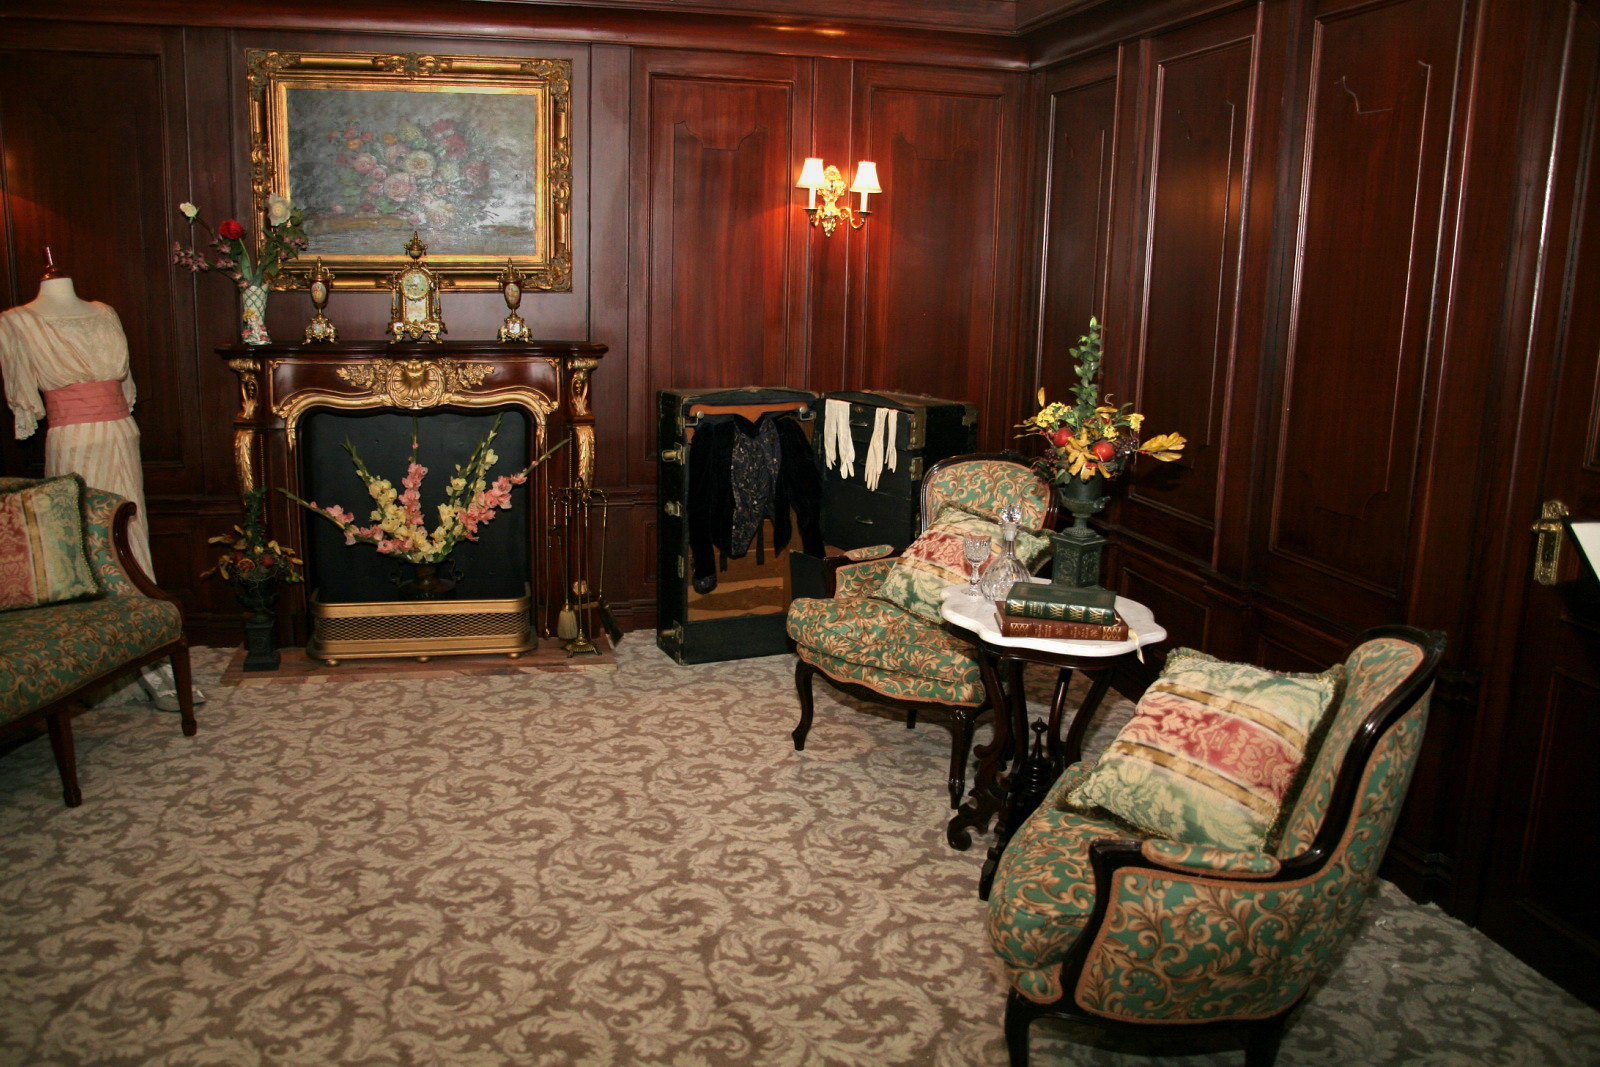 Titanic's first class stateroom. Credit Cliff1066